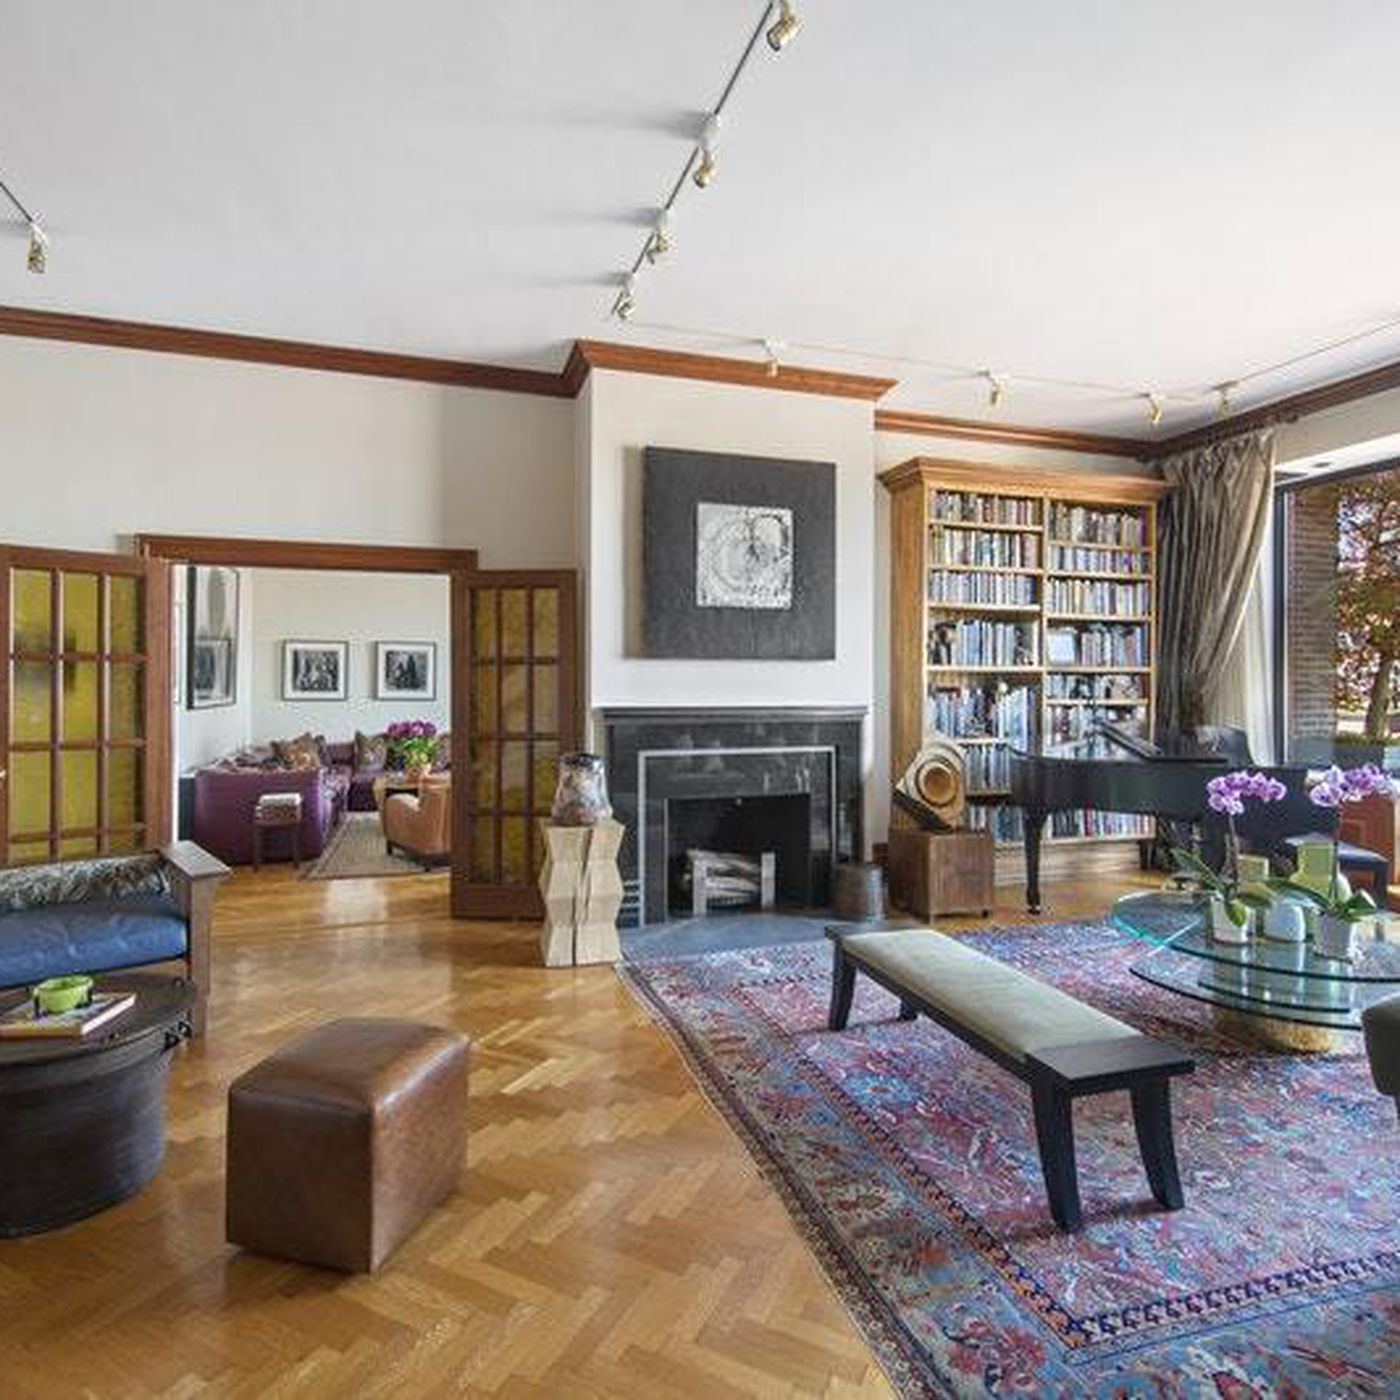 For $185M, A Park Avenue Penthouse With An Epic Terrace